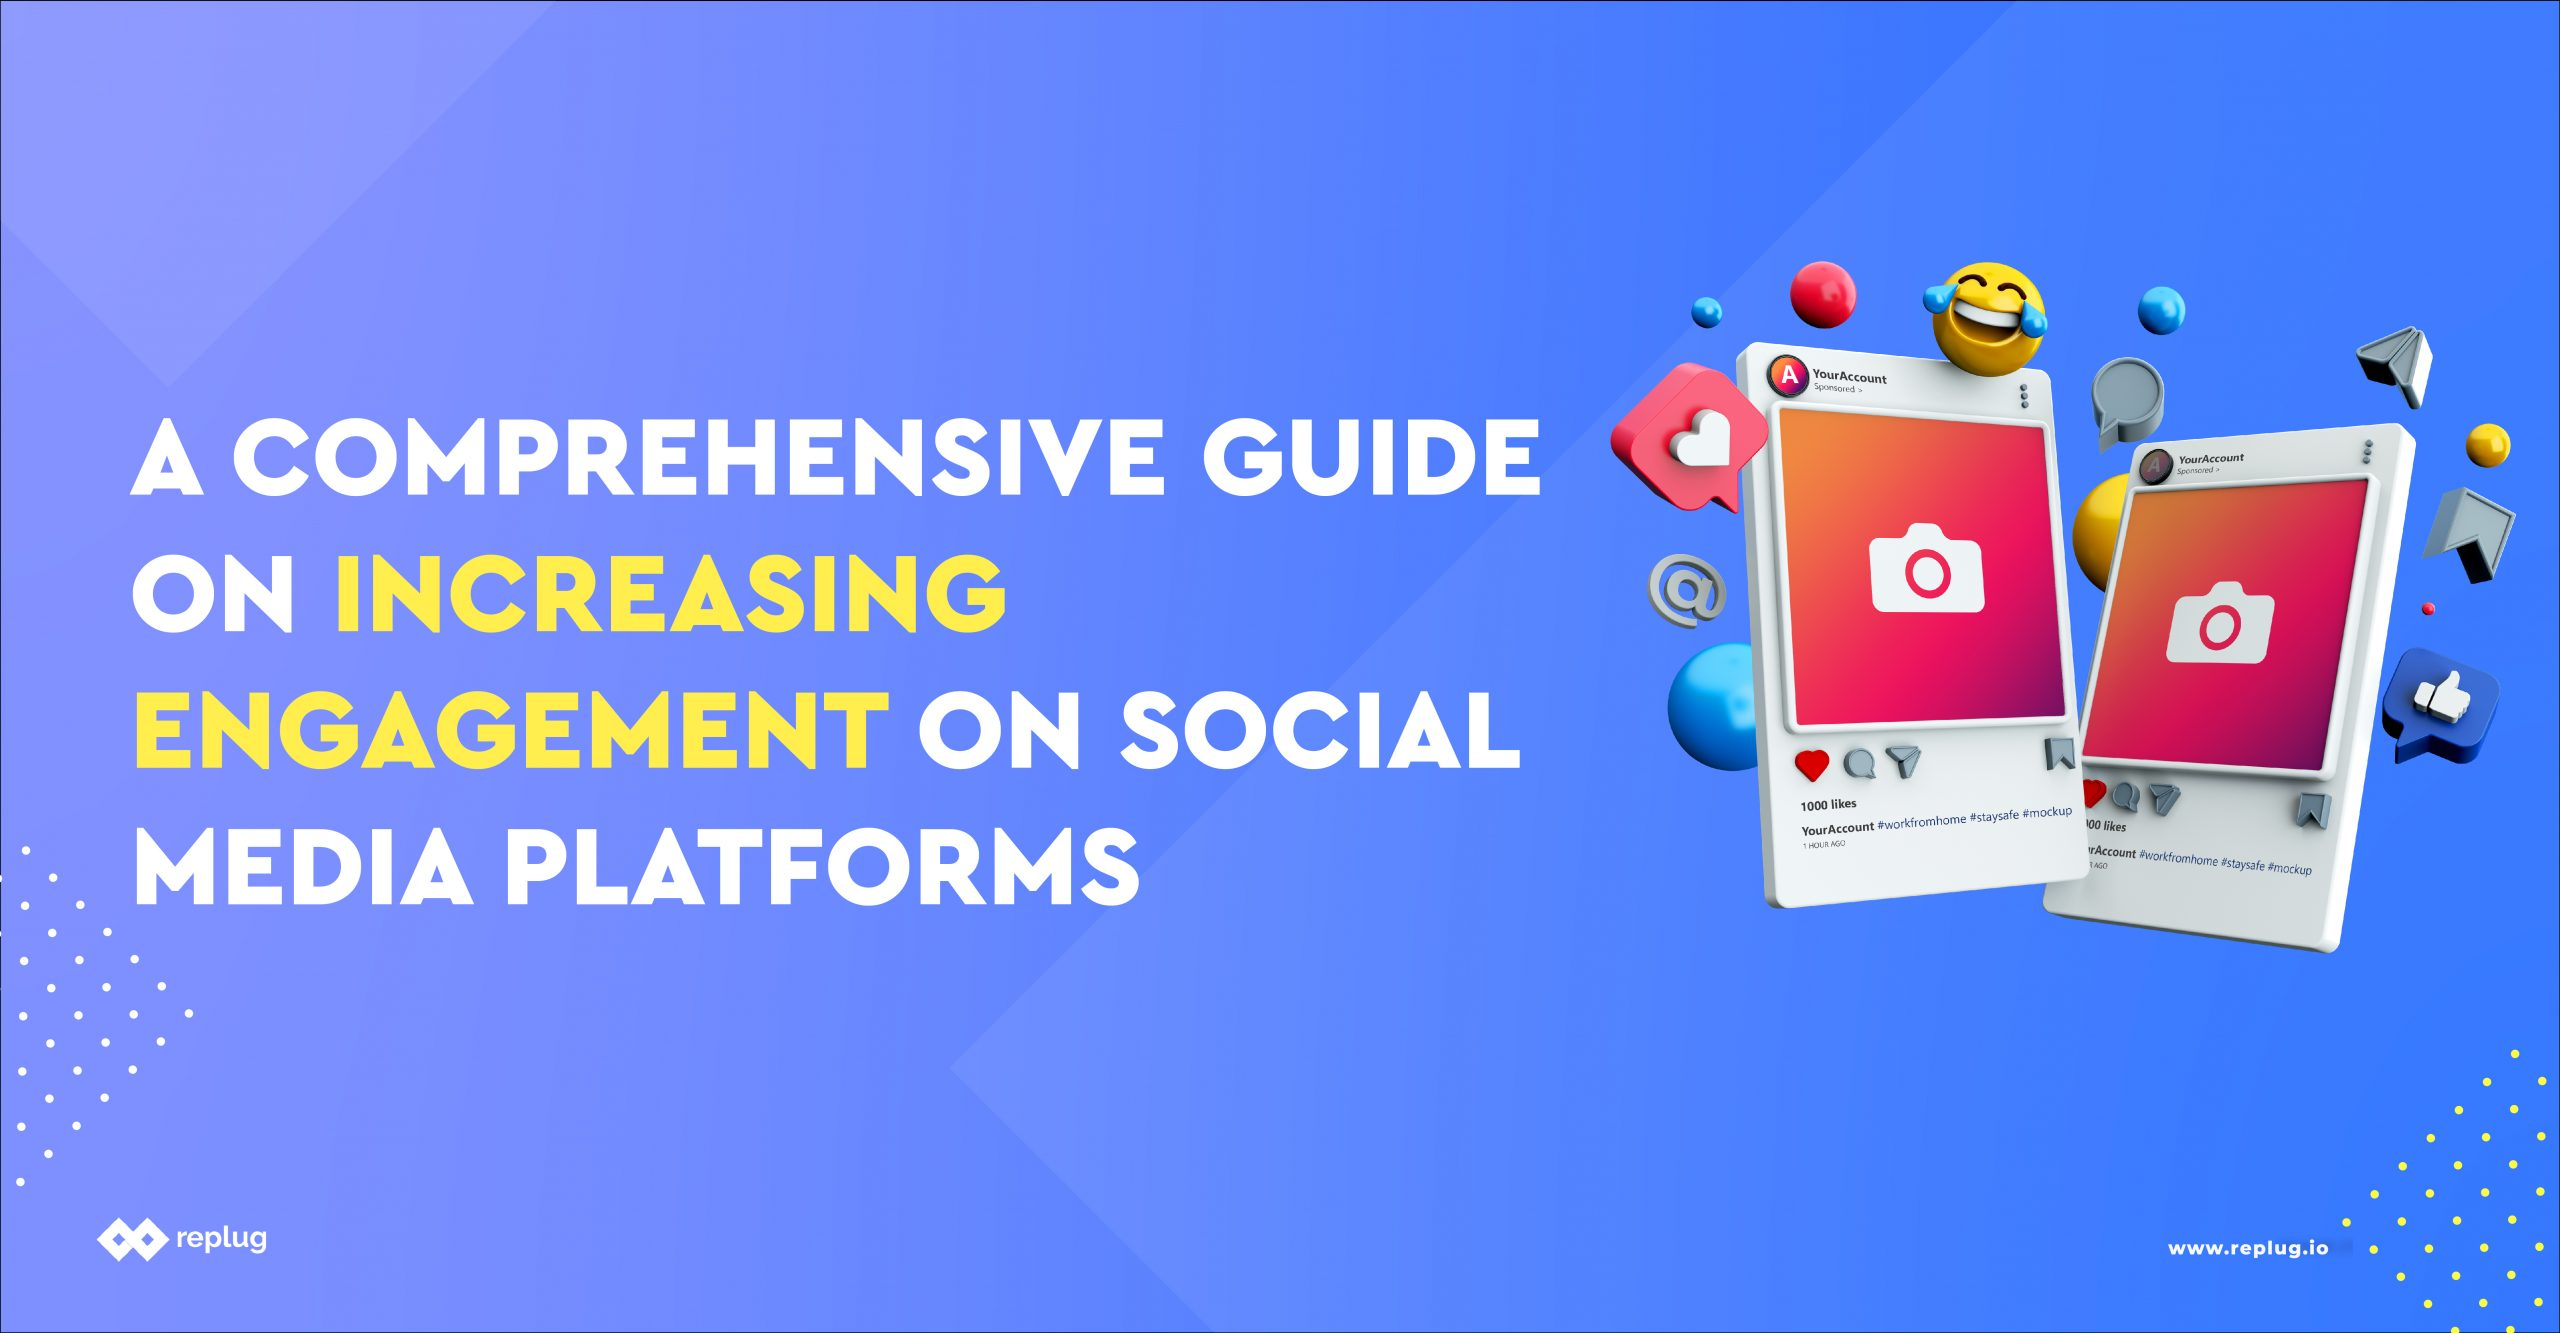 A Comprehensive Guide on Increasing Engagement on Social Media Platforms